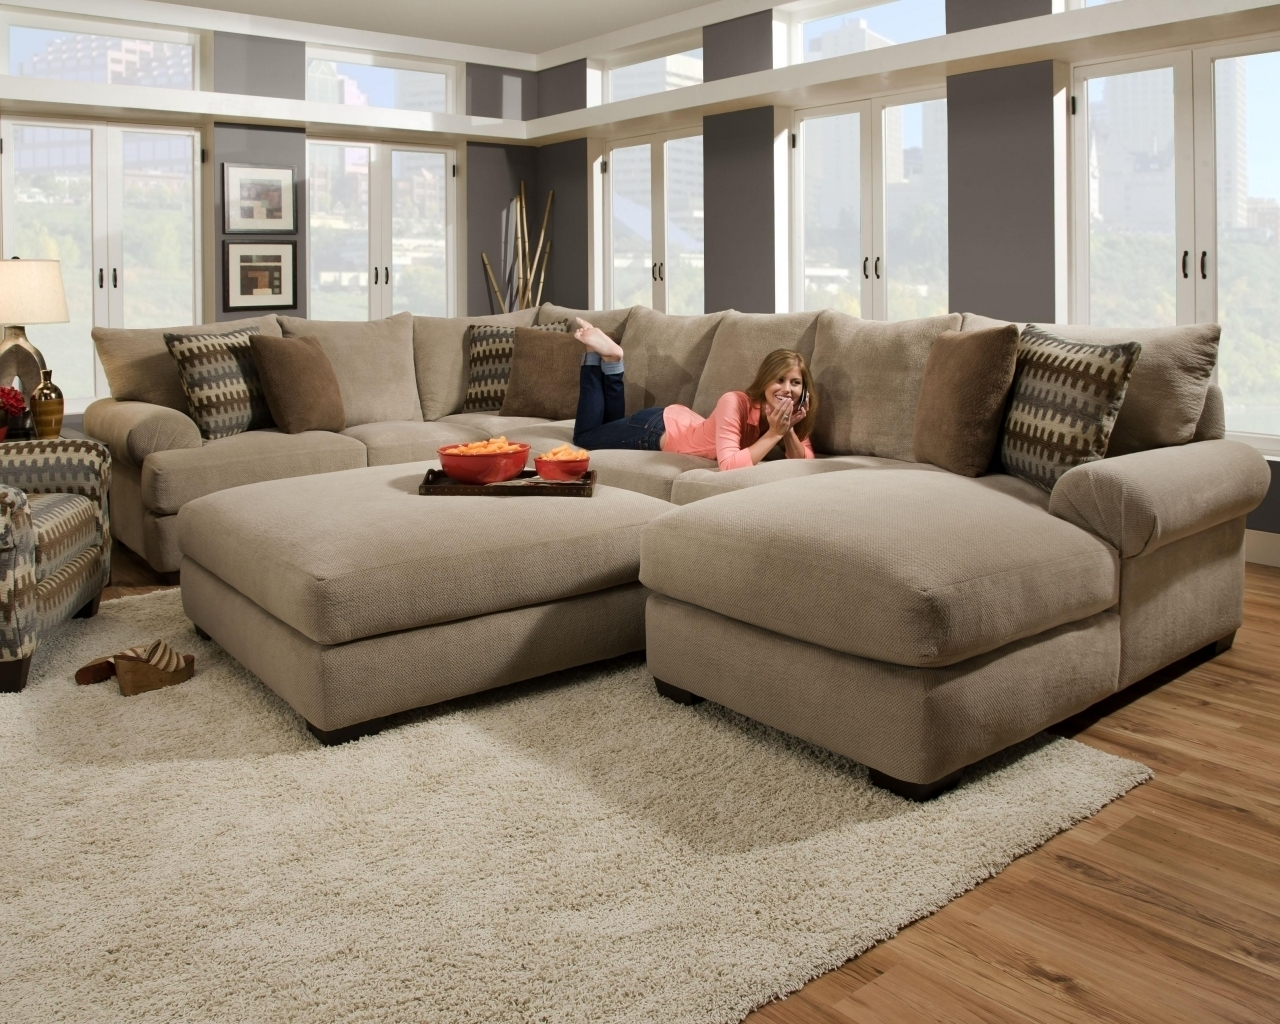 Amazing Sectional Sofa With Oversized Ottoman 59 For Your Best With Regard To Quality Sectional Sofas (View 7 of 10)